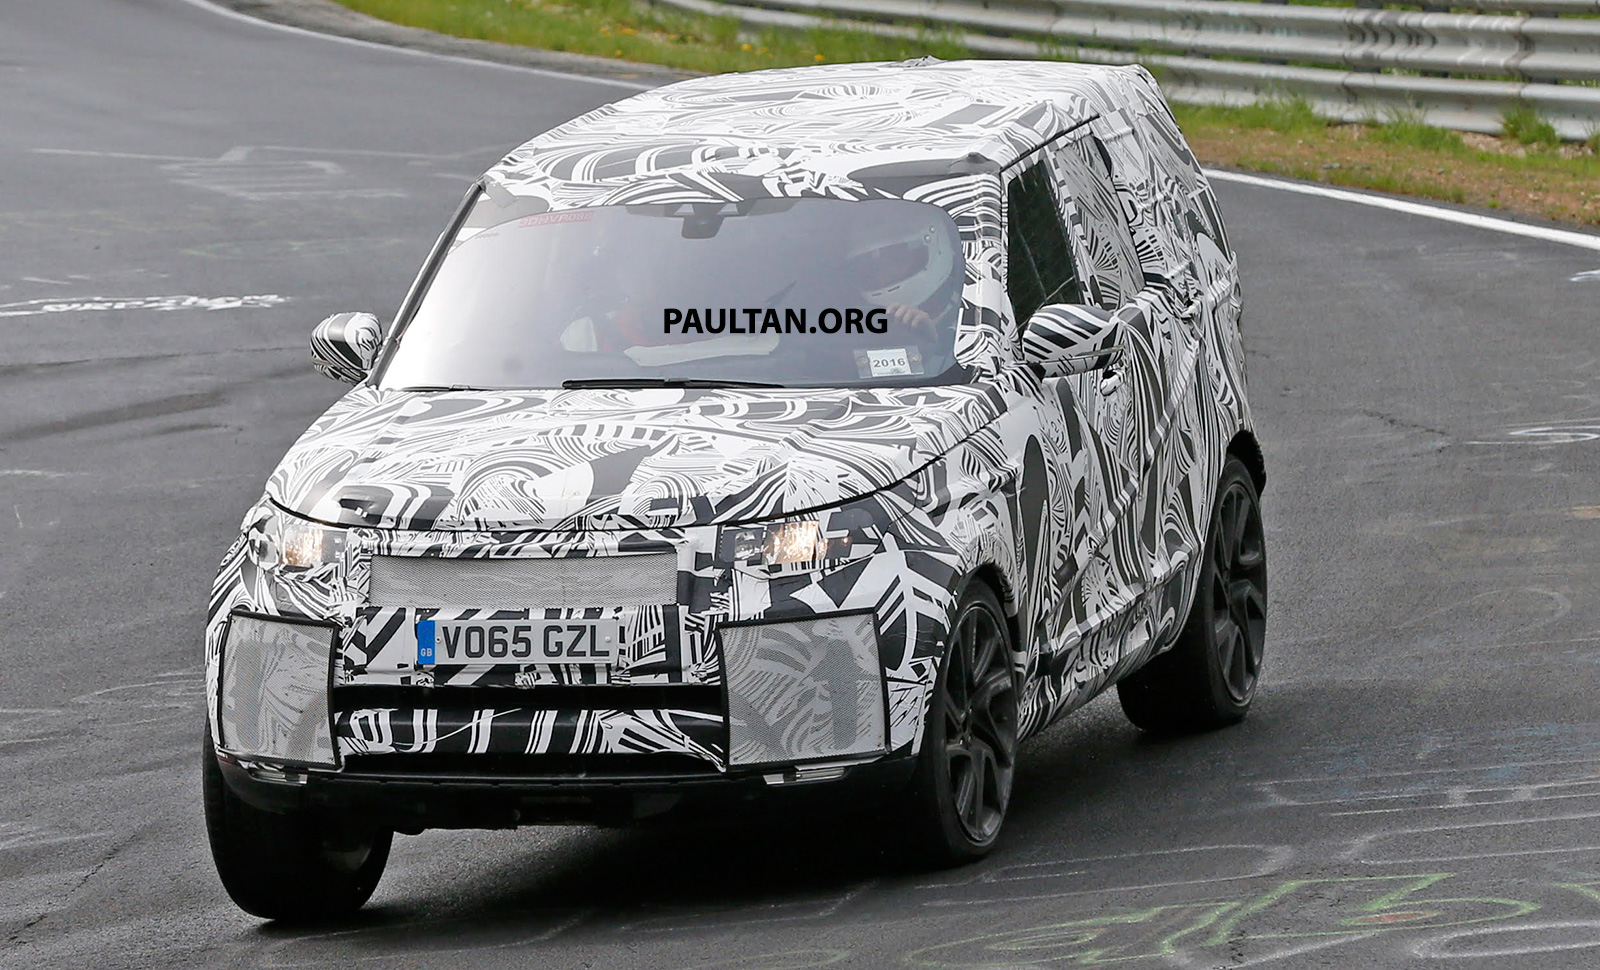 SPYSHOTS: 2017 Land Rover Discovery 5, in and out Paul Tan ...